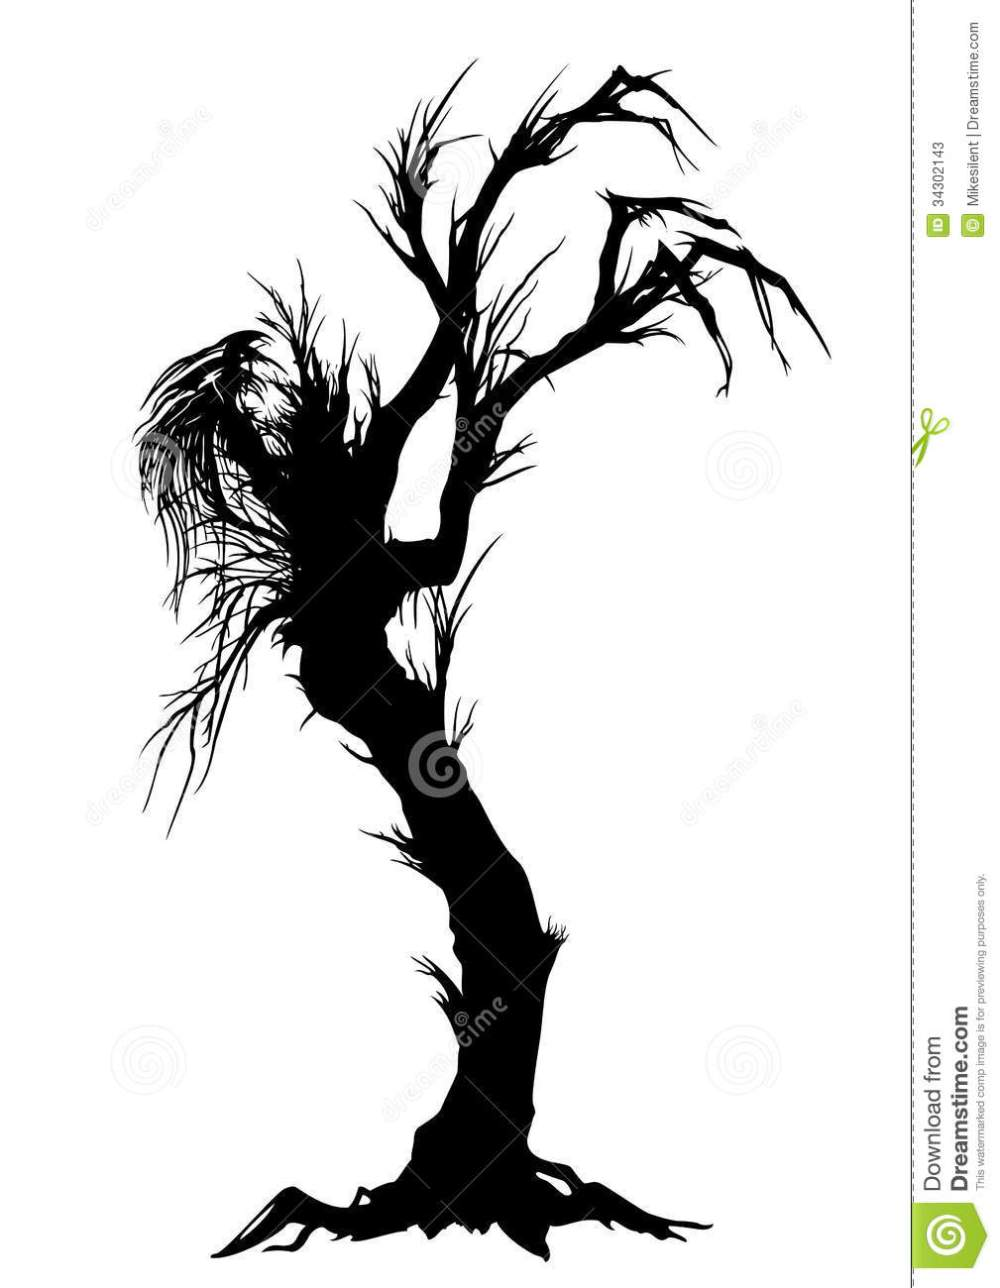 medium resolution of creepy tree silhouette vector images pictures spooky jpg 1009x1300 tree silouette clipart scary